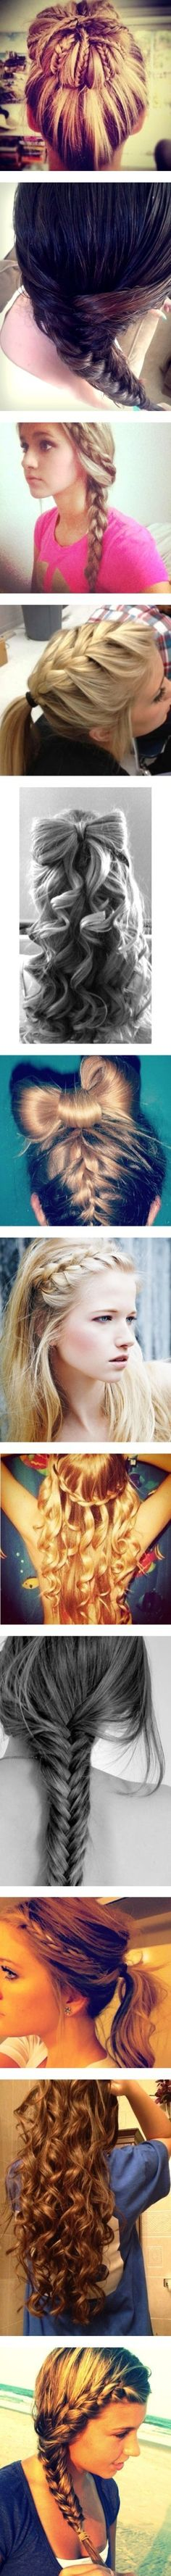 I love the top knot with the braids in it!